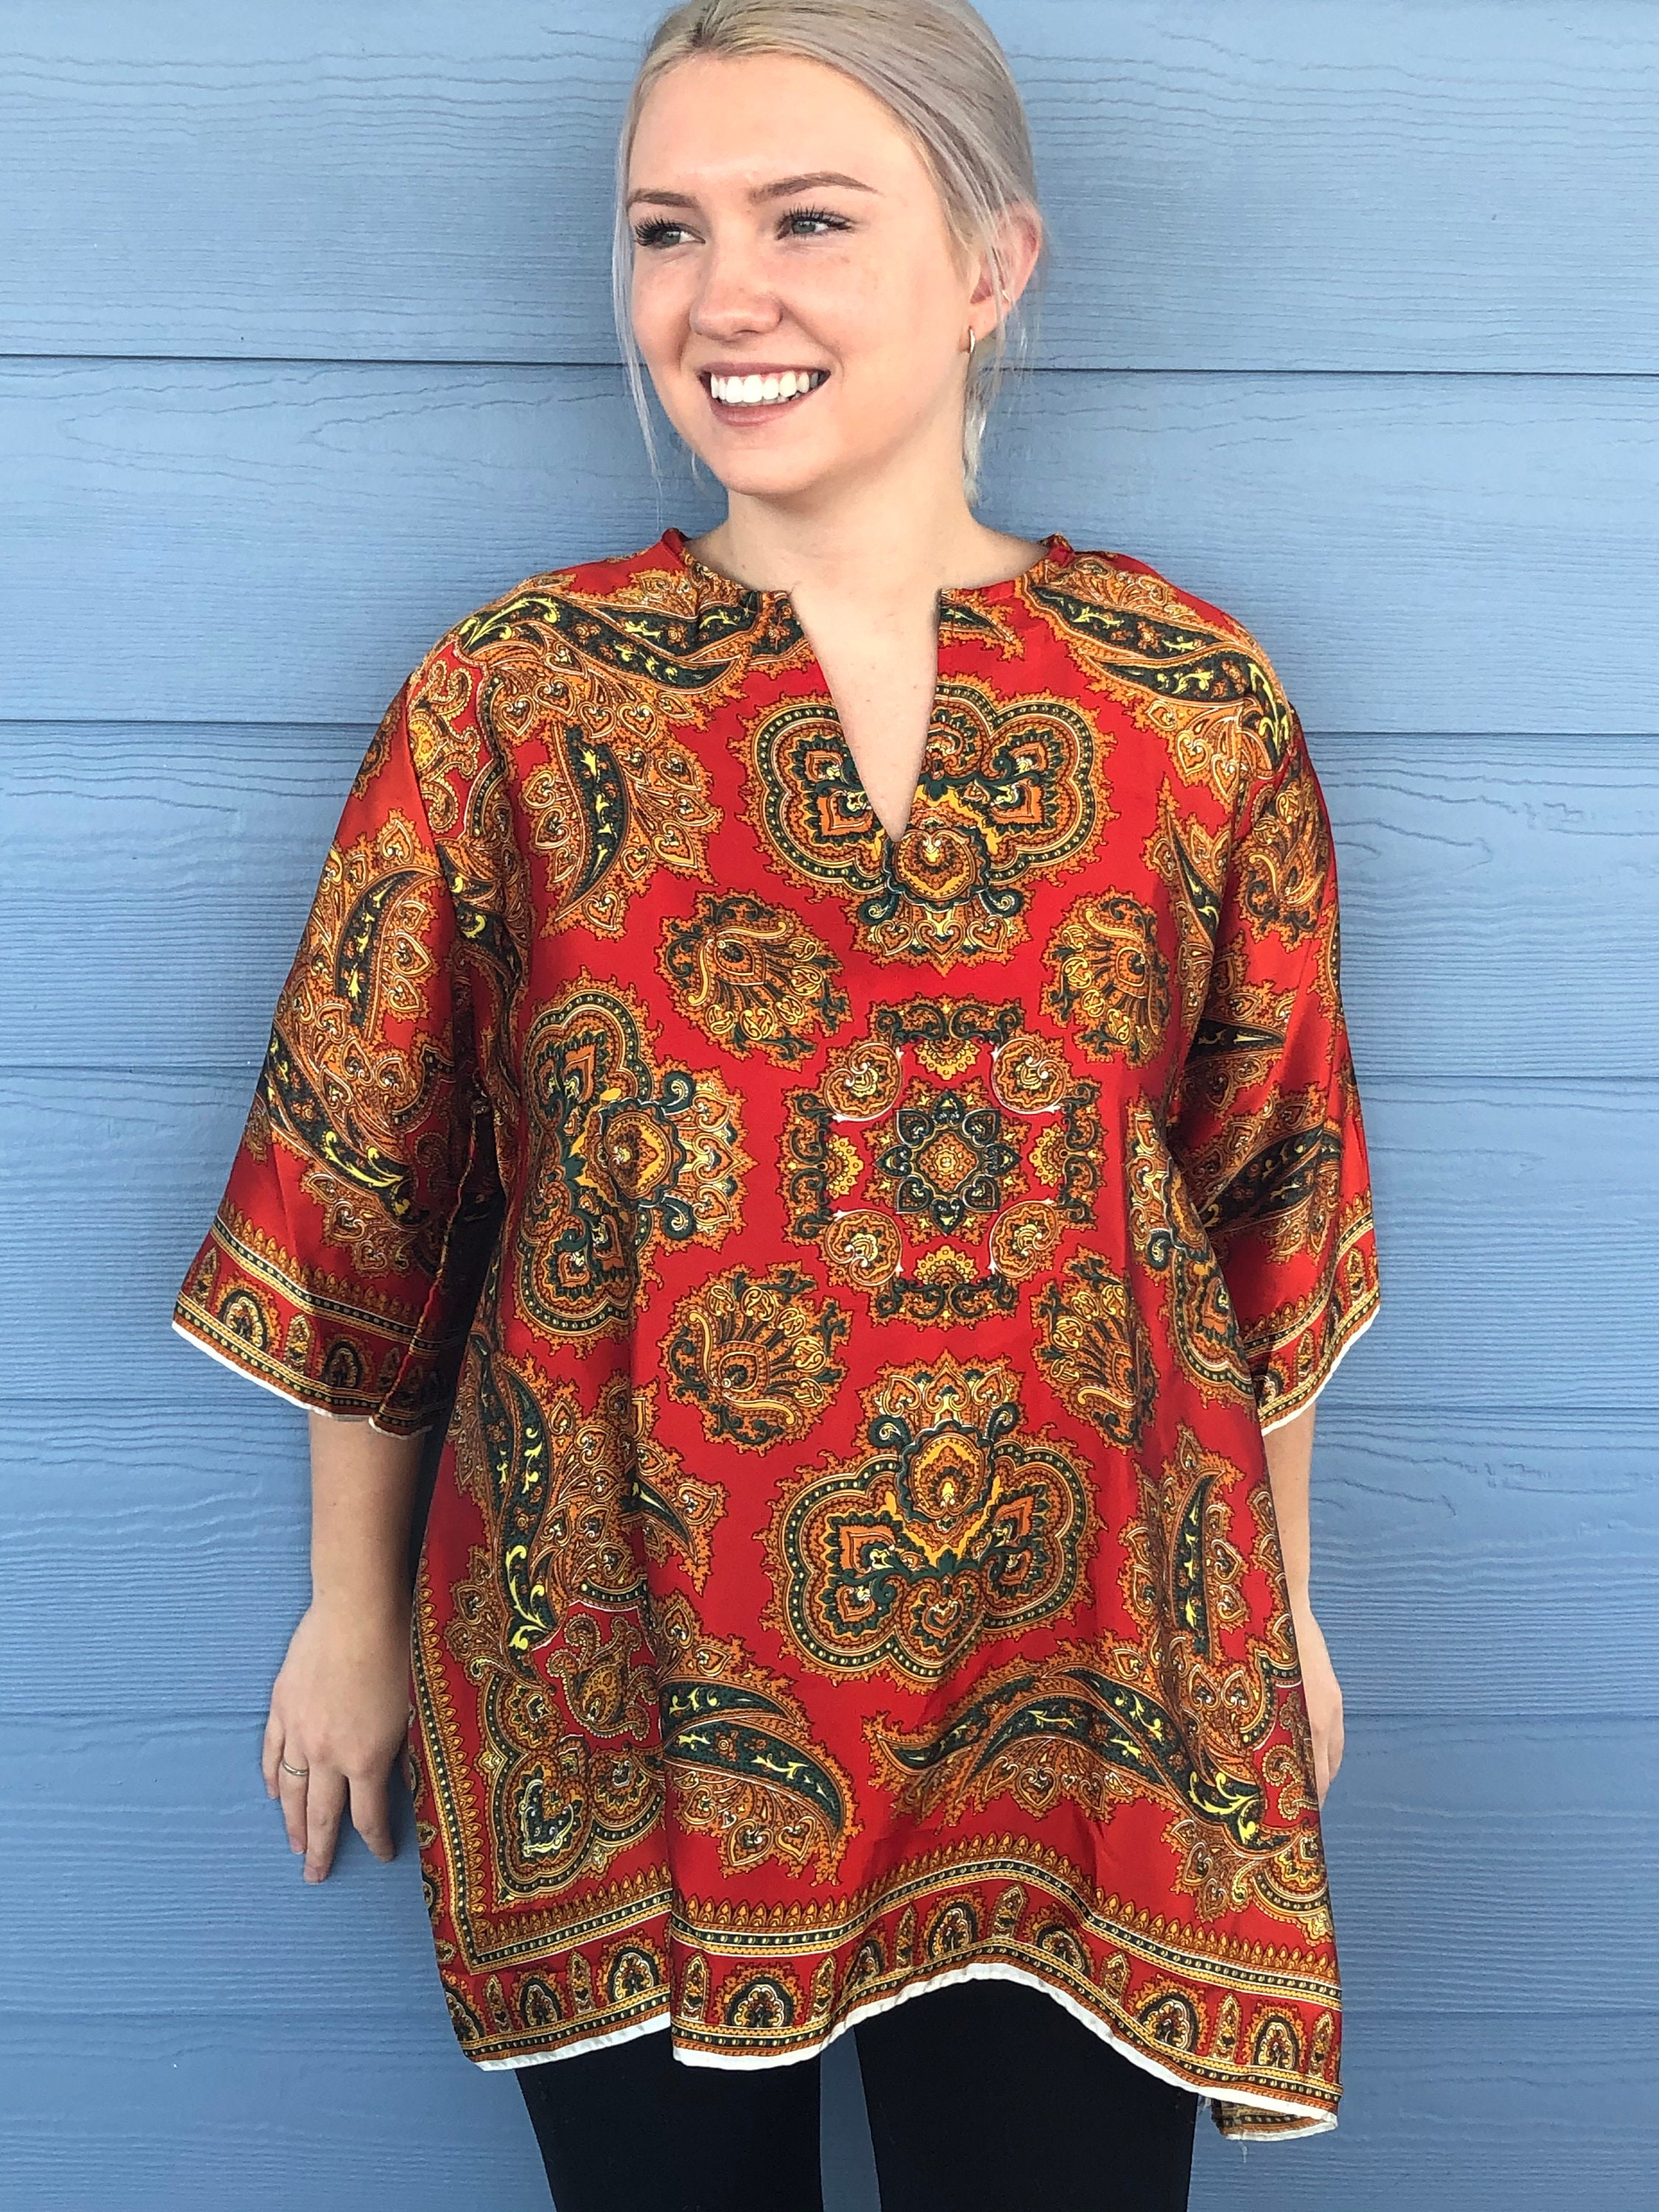 Vintage Scarf Styles -1920s to 1960s Vintage David Edden New Orleans 1960s Boho Hippie Tunic Top Red  Green Geometric Print Acetate Size S - Scarf Tunic Top, Acetate Top $35.00 AT vintagedancer.com